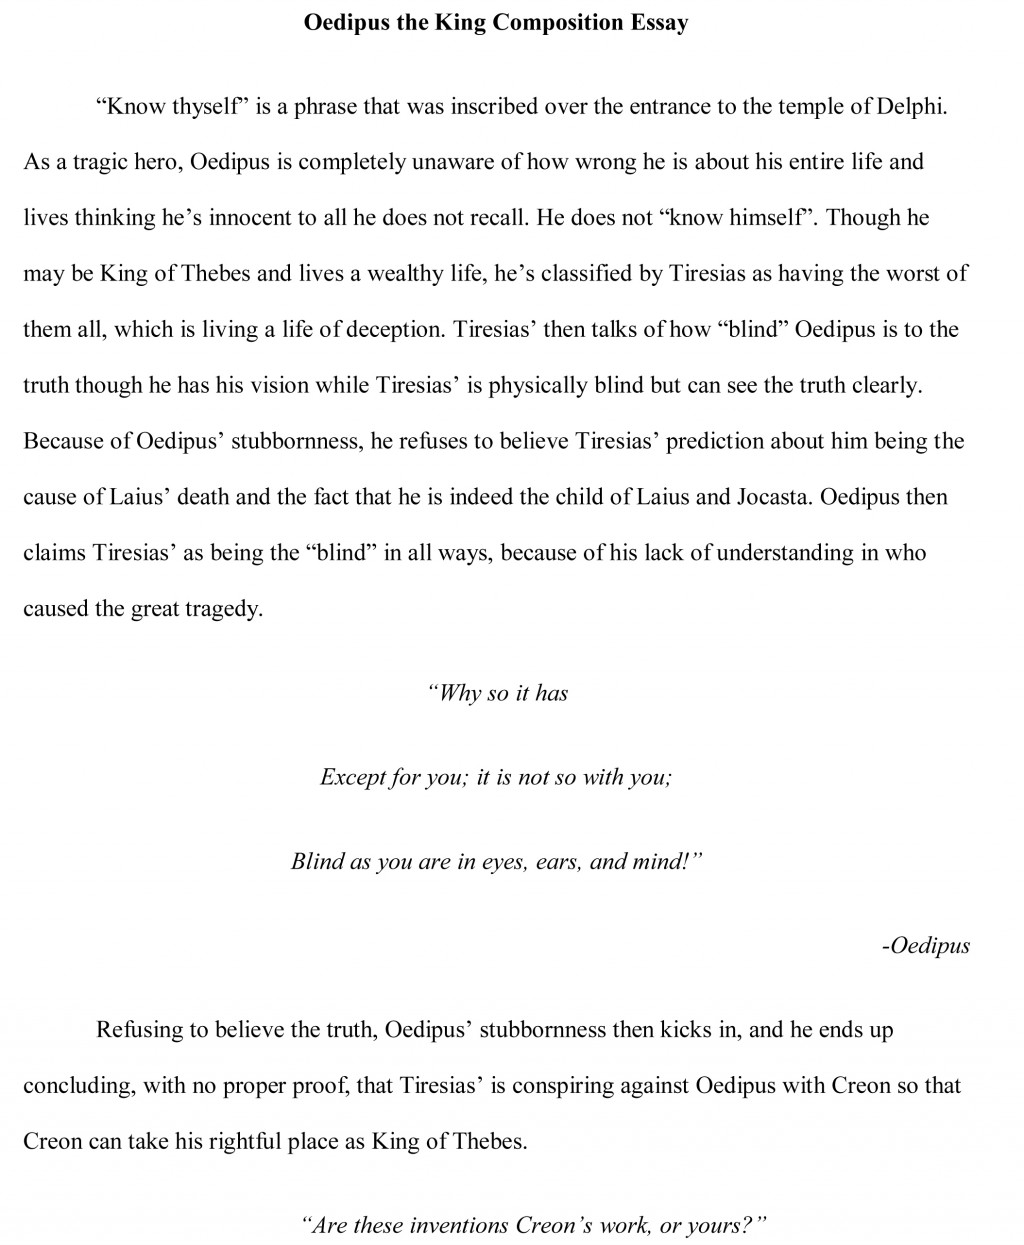 007 Essay Example Oedipus Free Sample Prompt Incredible Examples College Writing For 4th Grade Prompts Expository High School Large